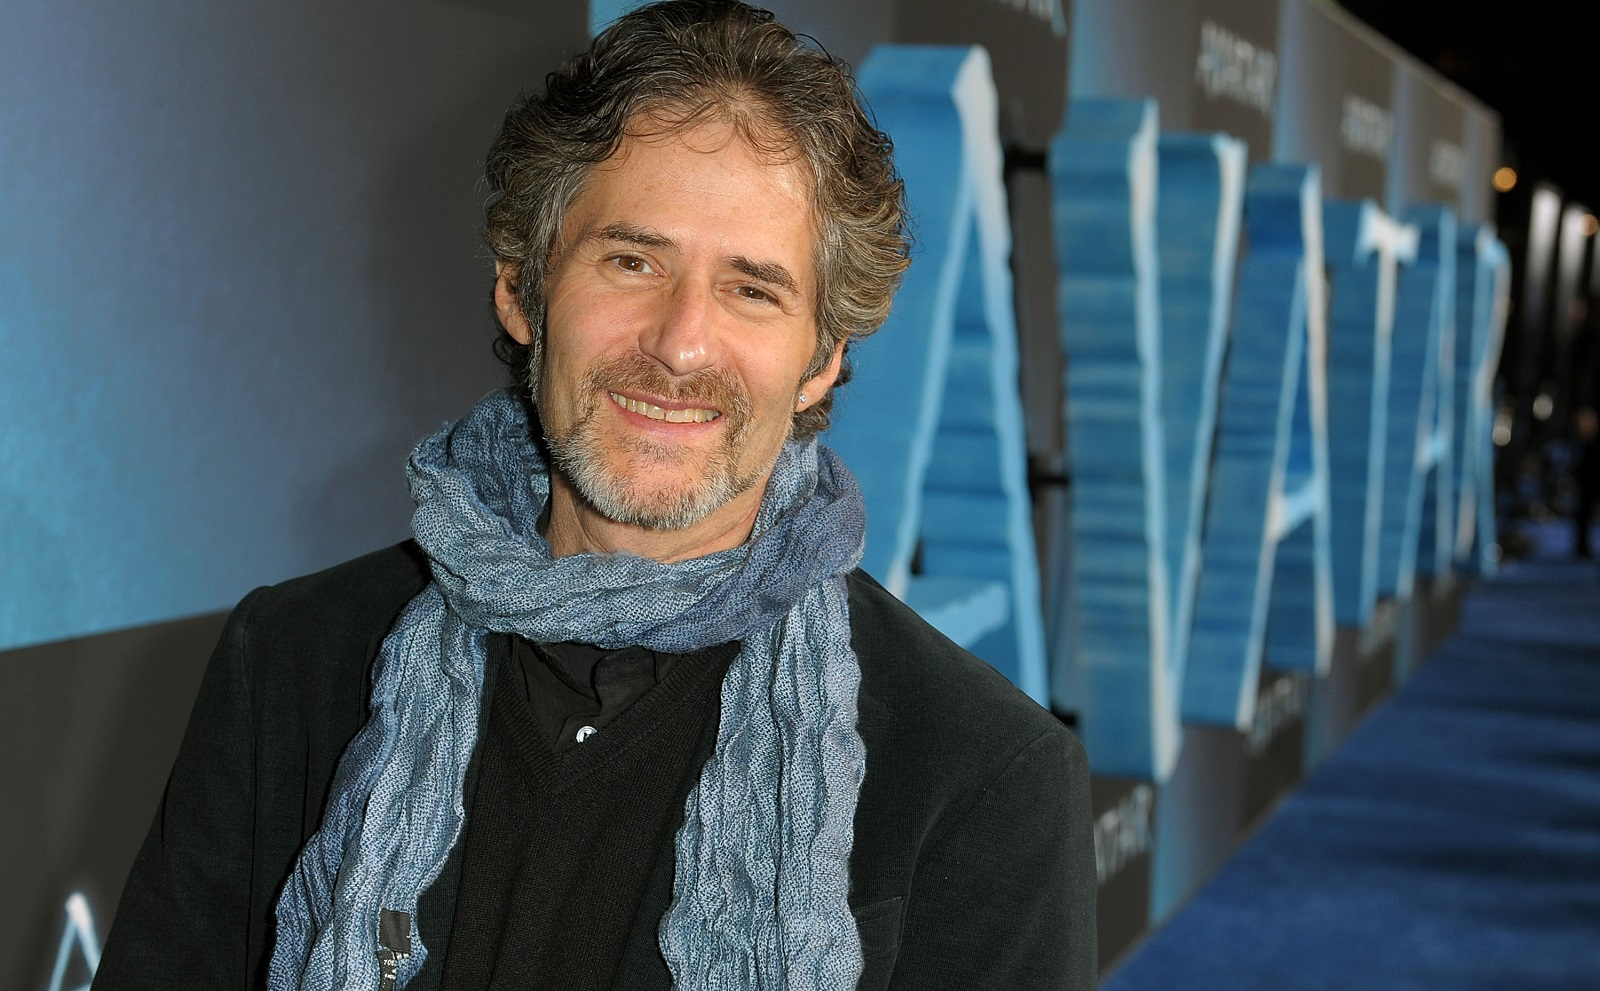 Composer James Horner, pictured during the premiere of 'Avatar' in 2009, had his latest work released posthumously. (Getty Images)